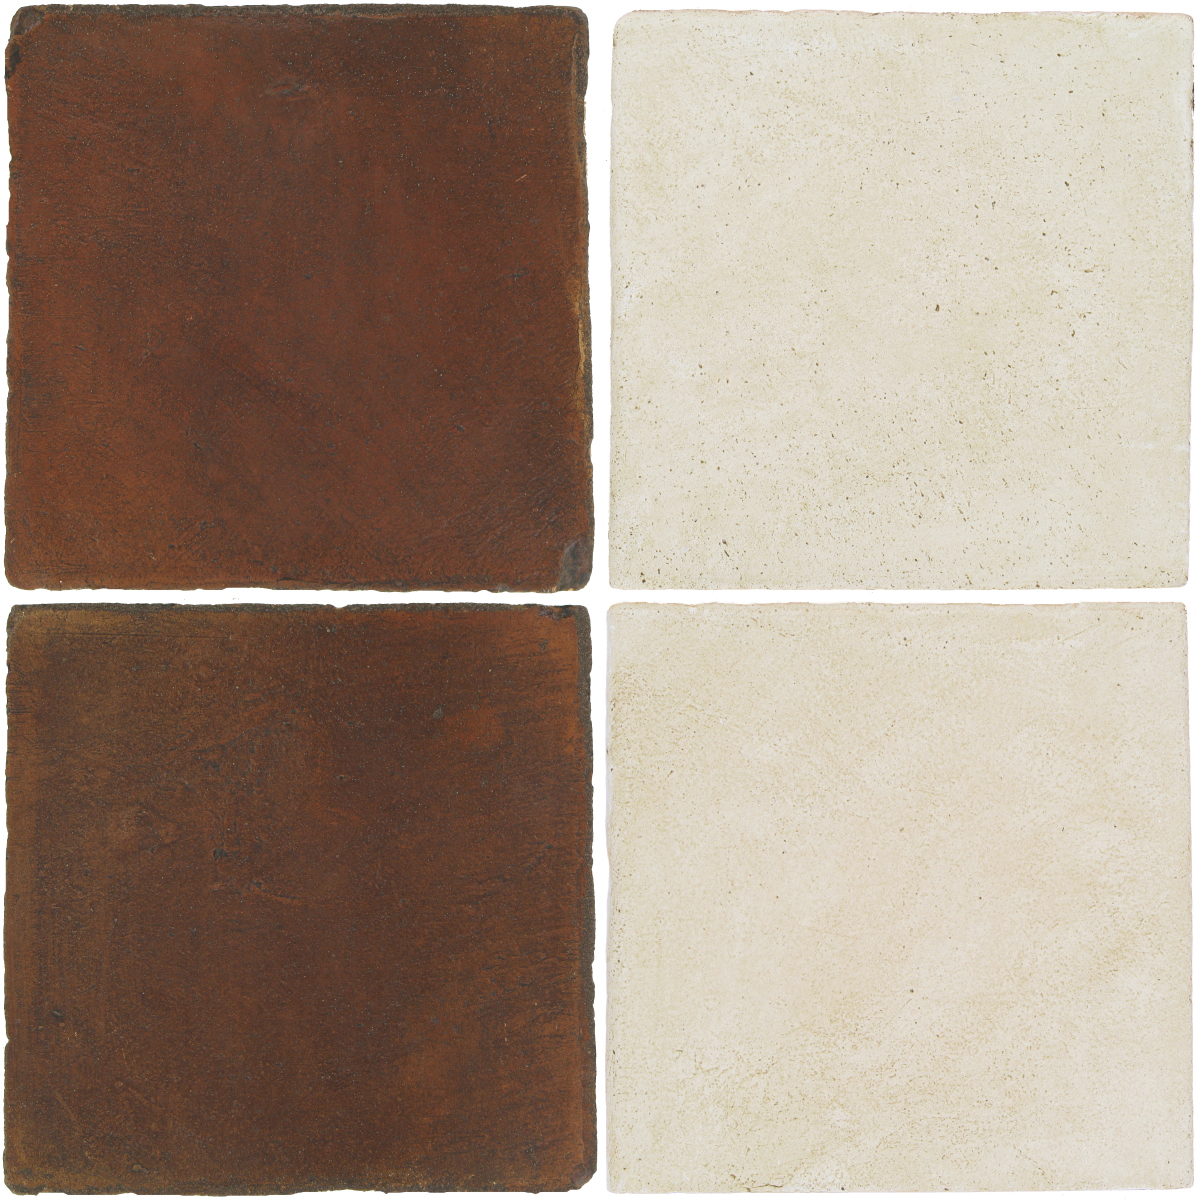 Pedralbes Antique Terracotta  2 Color Combinations  OHS-PSOW Old World + OHS-PGAW Antique White